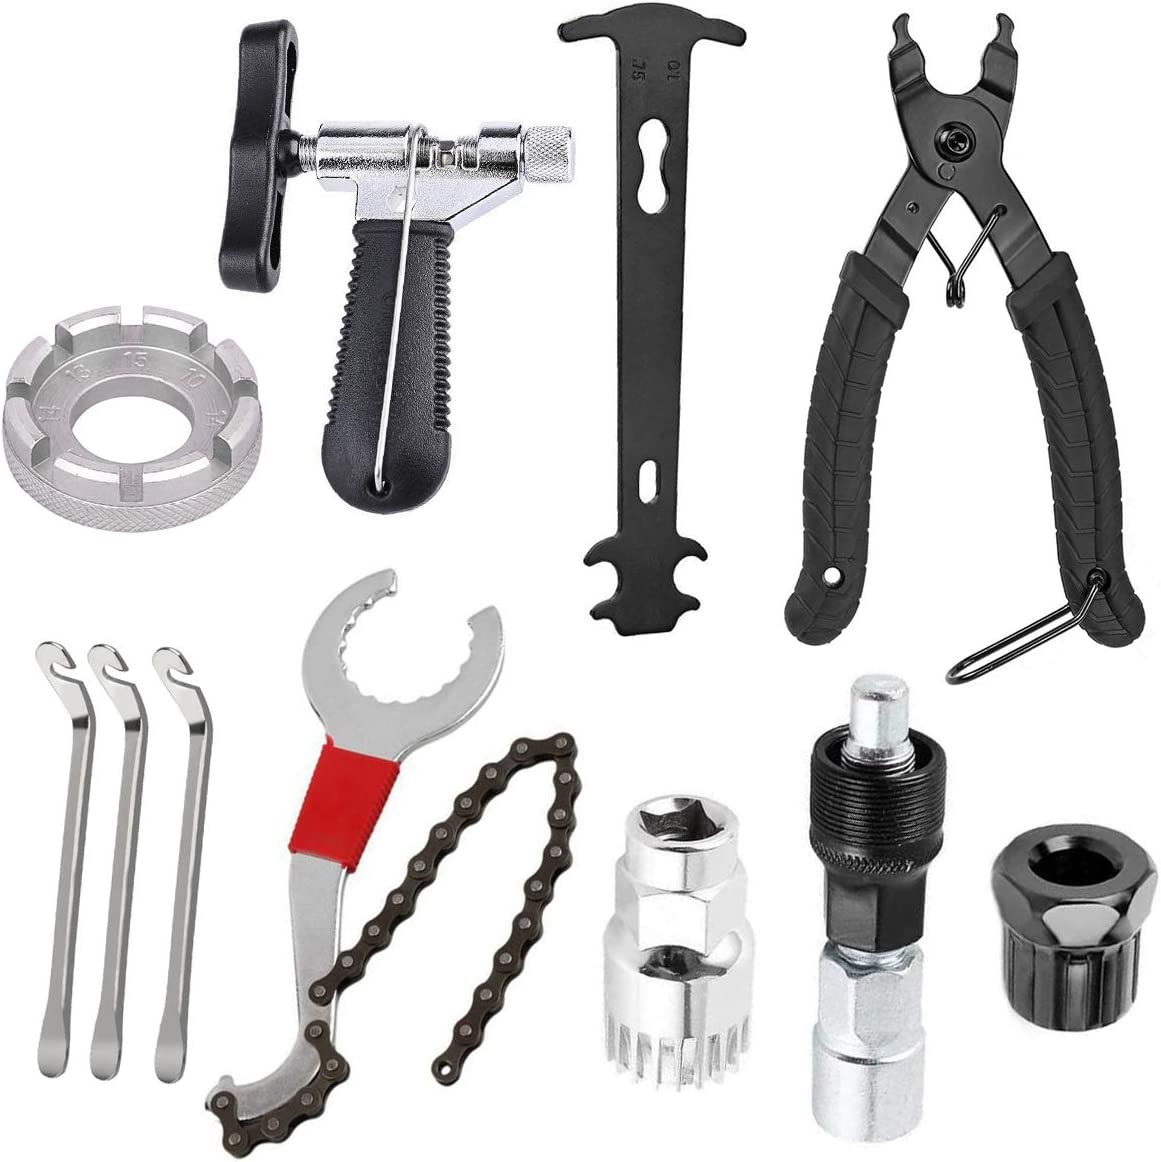 fshihine 11Pcs Bicycle Popular Sale Special Price Cassette Removal Chain Whi with Tool Kits